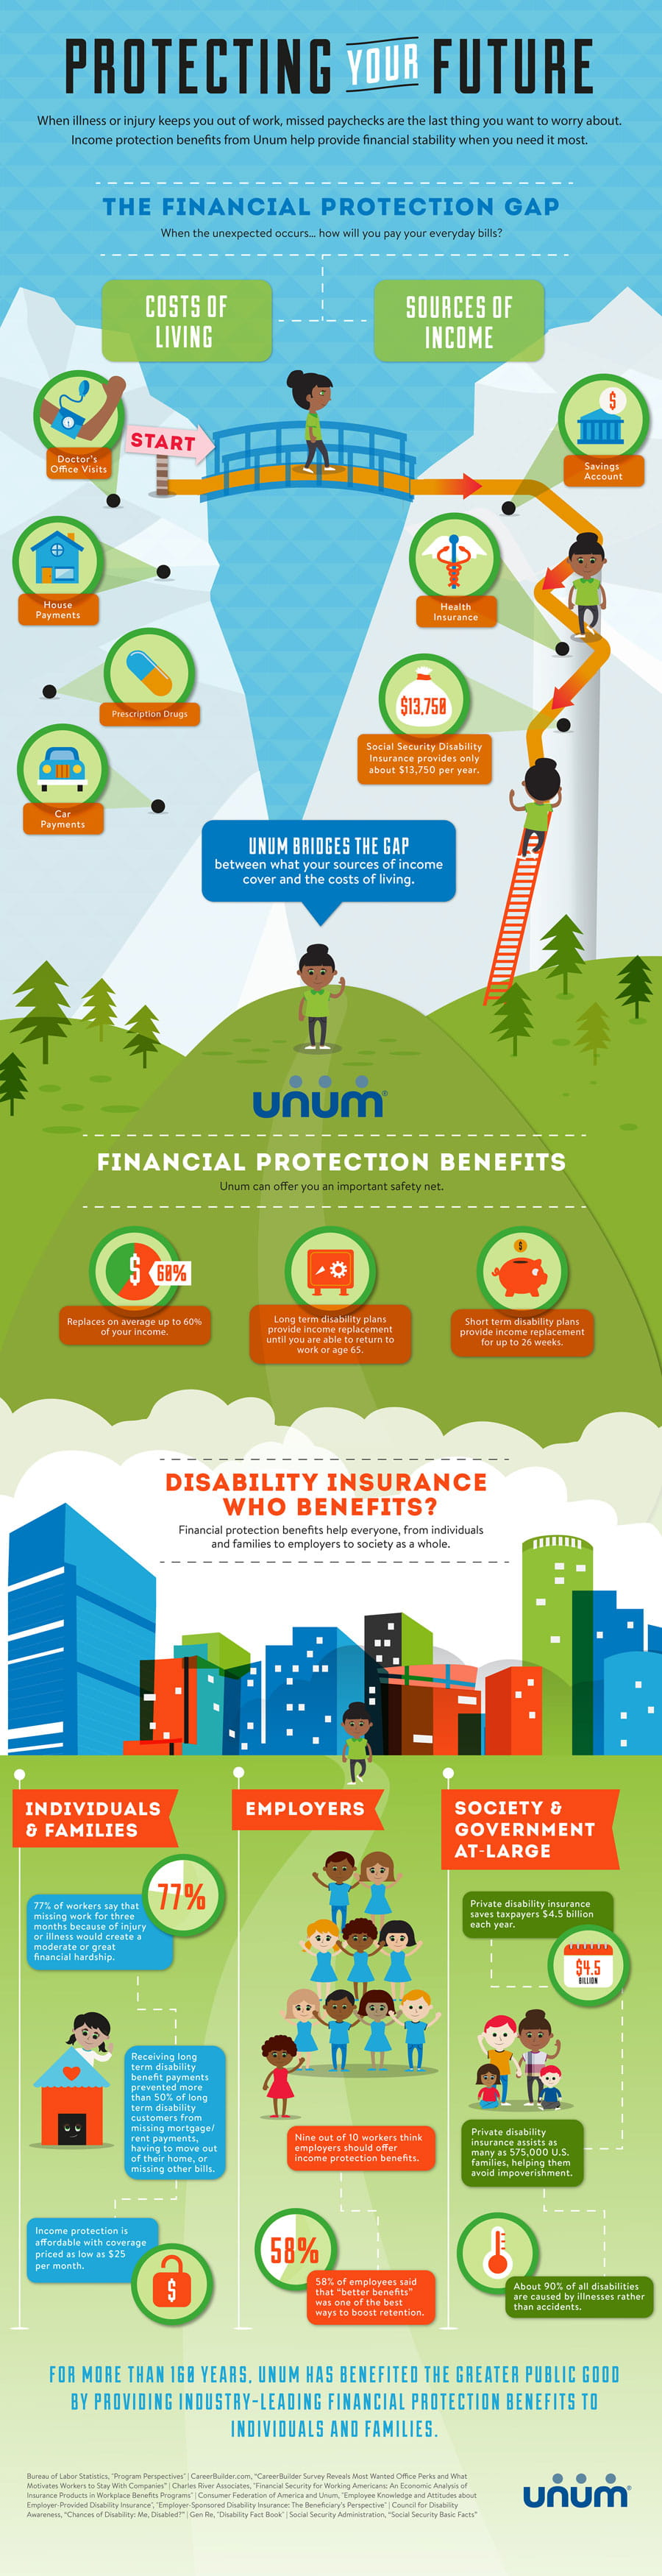 Protecting your future infographic